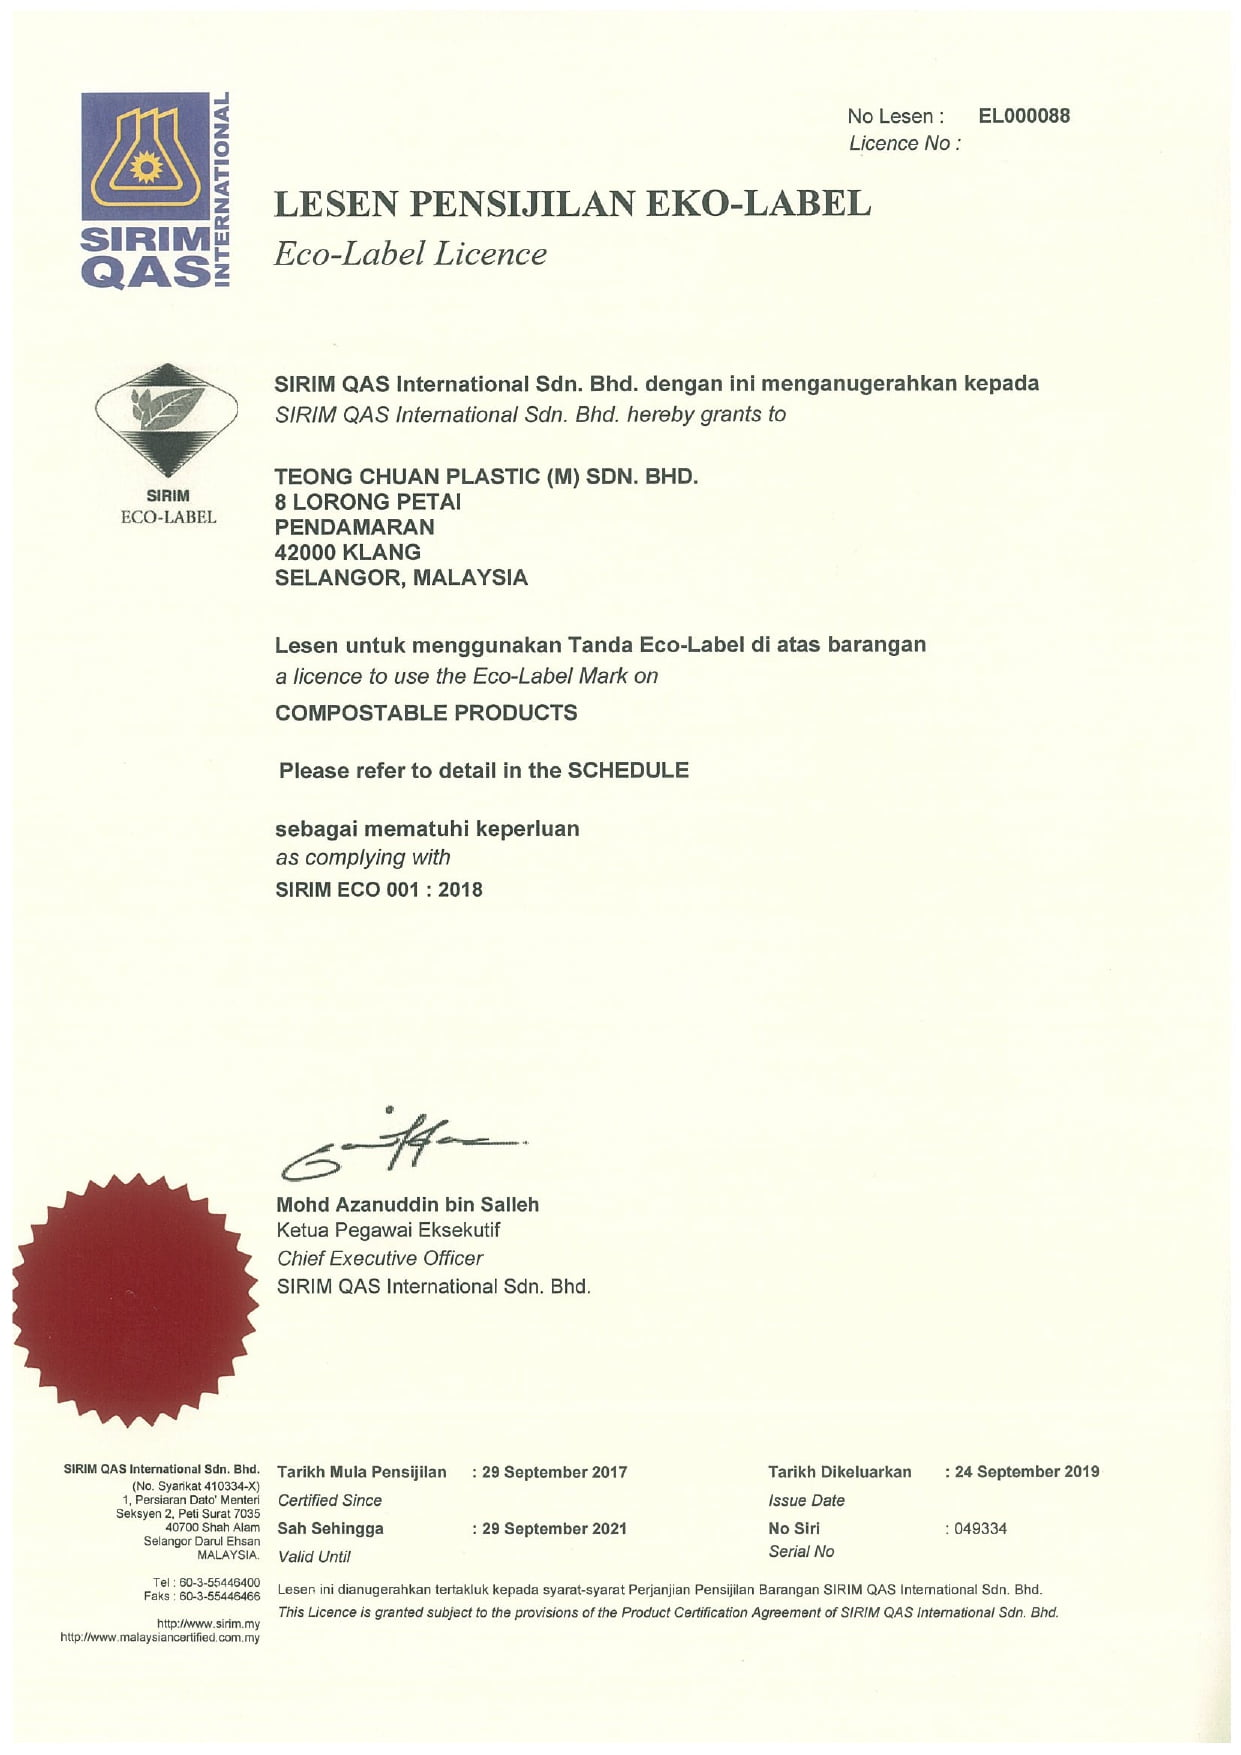 SIRIM Eco Label Certificate Sept 2019 - 2021_page-0001